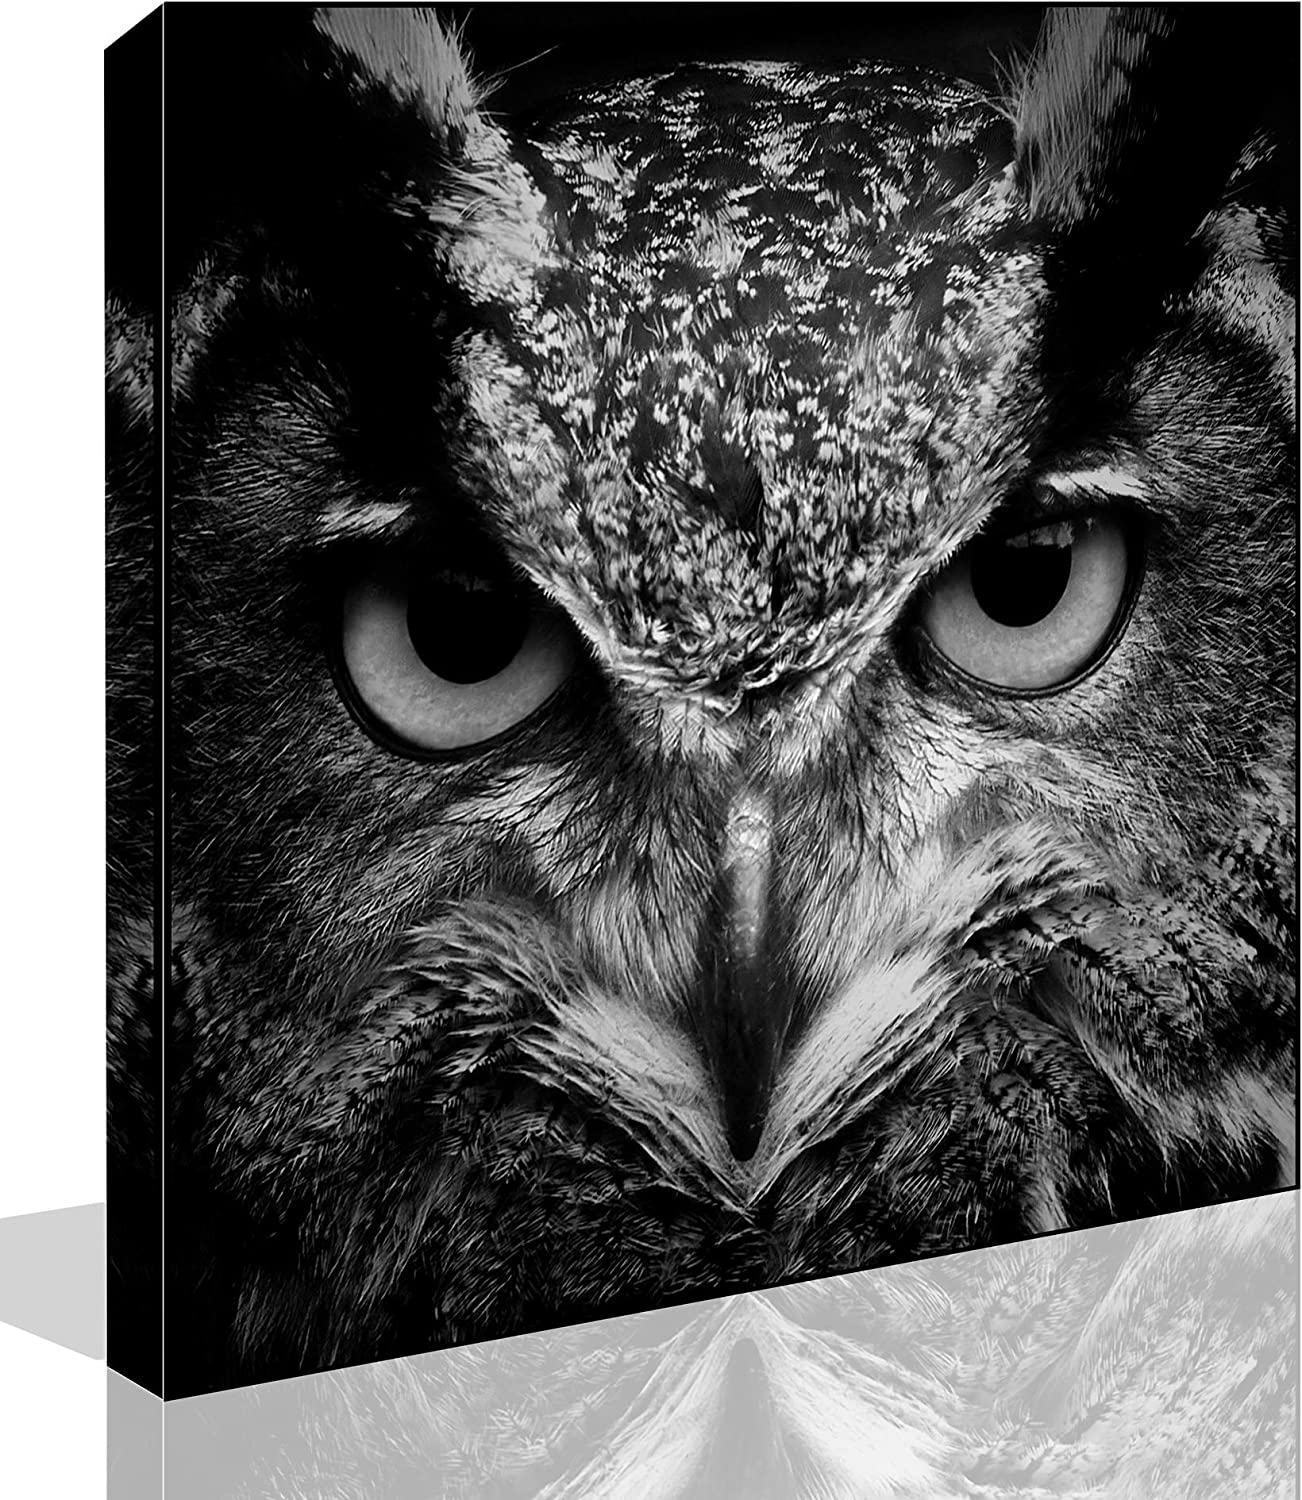 The Melody Art - Modern Giclee Prints All Framed Animal Artwork Black and White Owl Picture Print to Photo Printed Paintings on Canvas Wall Art Decor for Home Office Decorations 16 by 16 inch